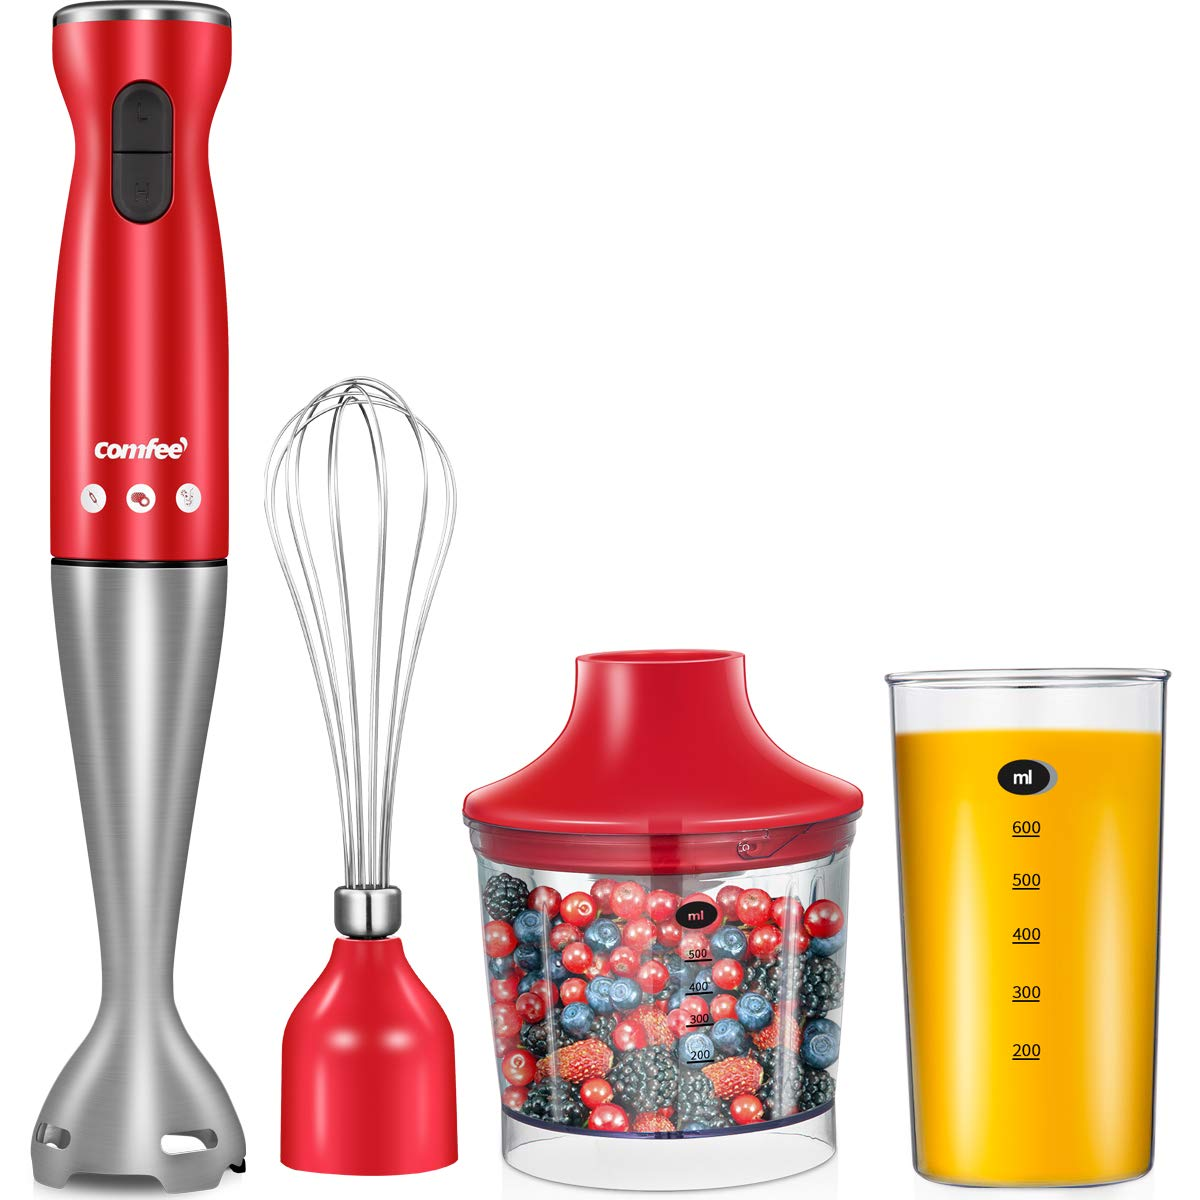 Electric Hand Immersion Blender, 4-in-1 Hand Mixer with 500ml Food Chopper, 600ml Beaker, Balloon Whisk, Stainless Steel Blending Shaft by Comfee (RED)